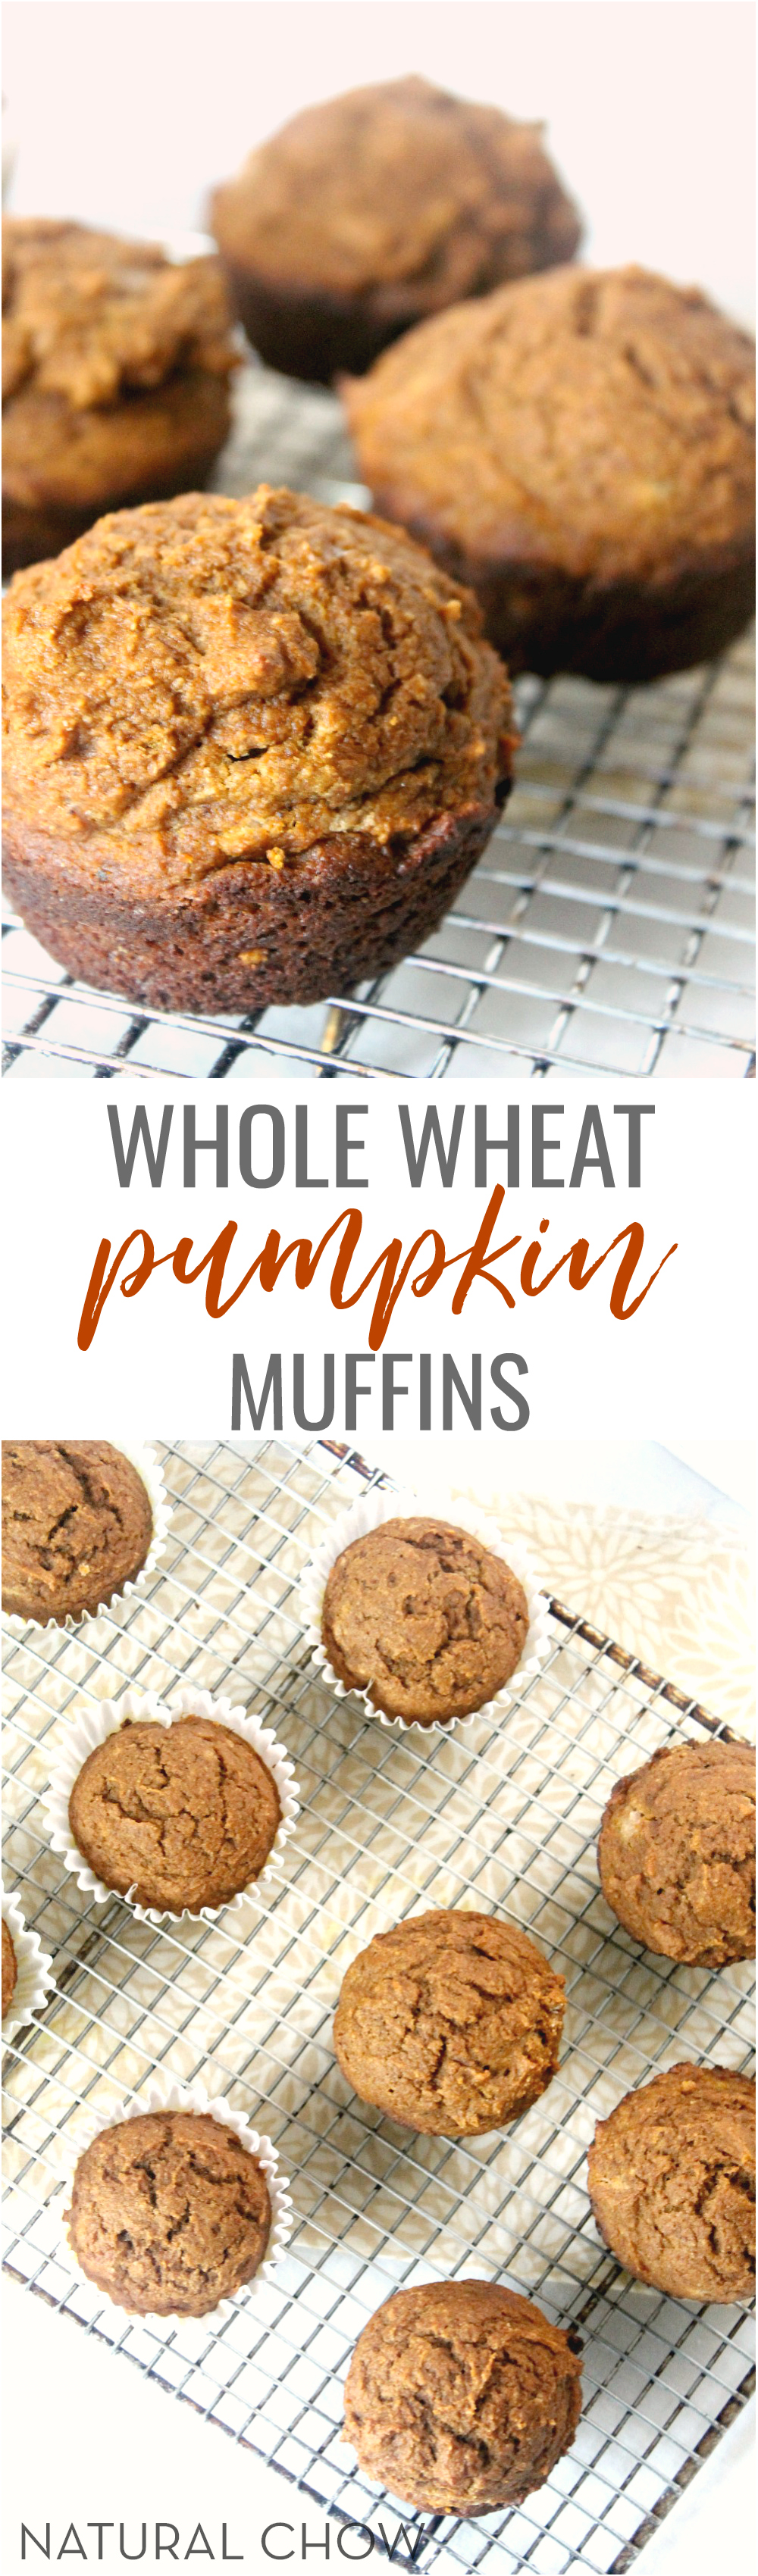 These whole wheat pumpkin muffins, slathered with butter and drizzled with a little bit of honey are like a bite of heaven. Pumpkin lovers rejoice!